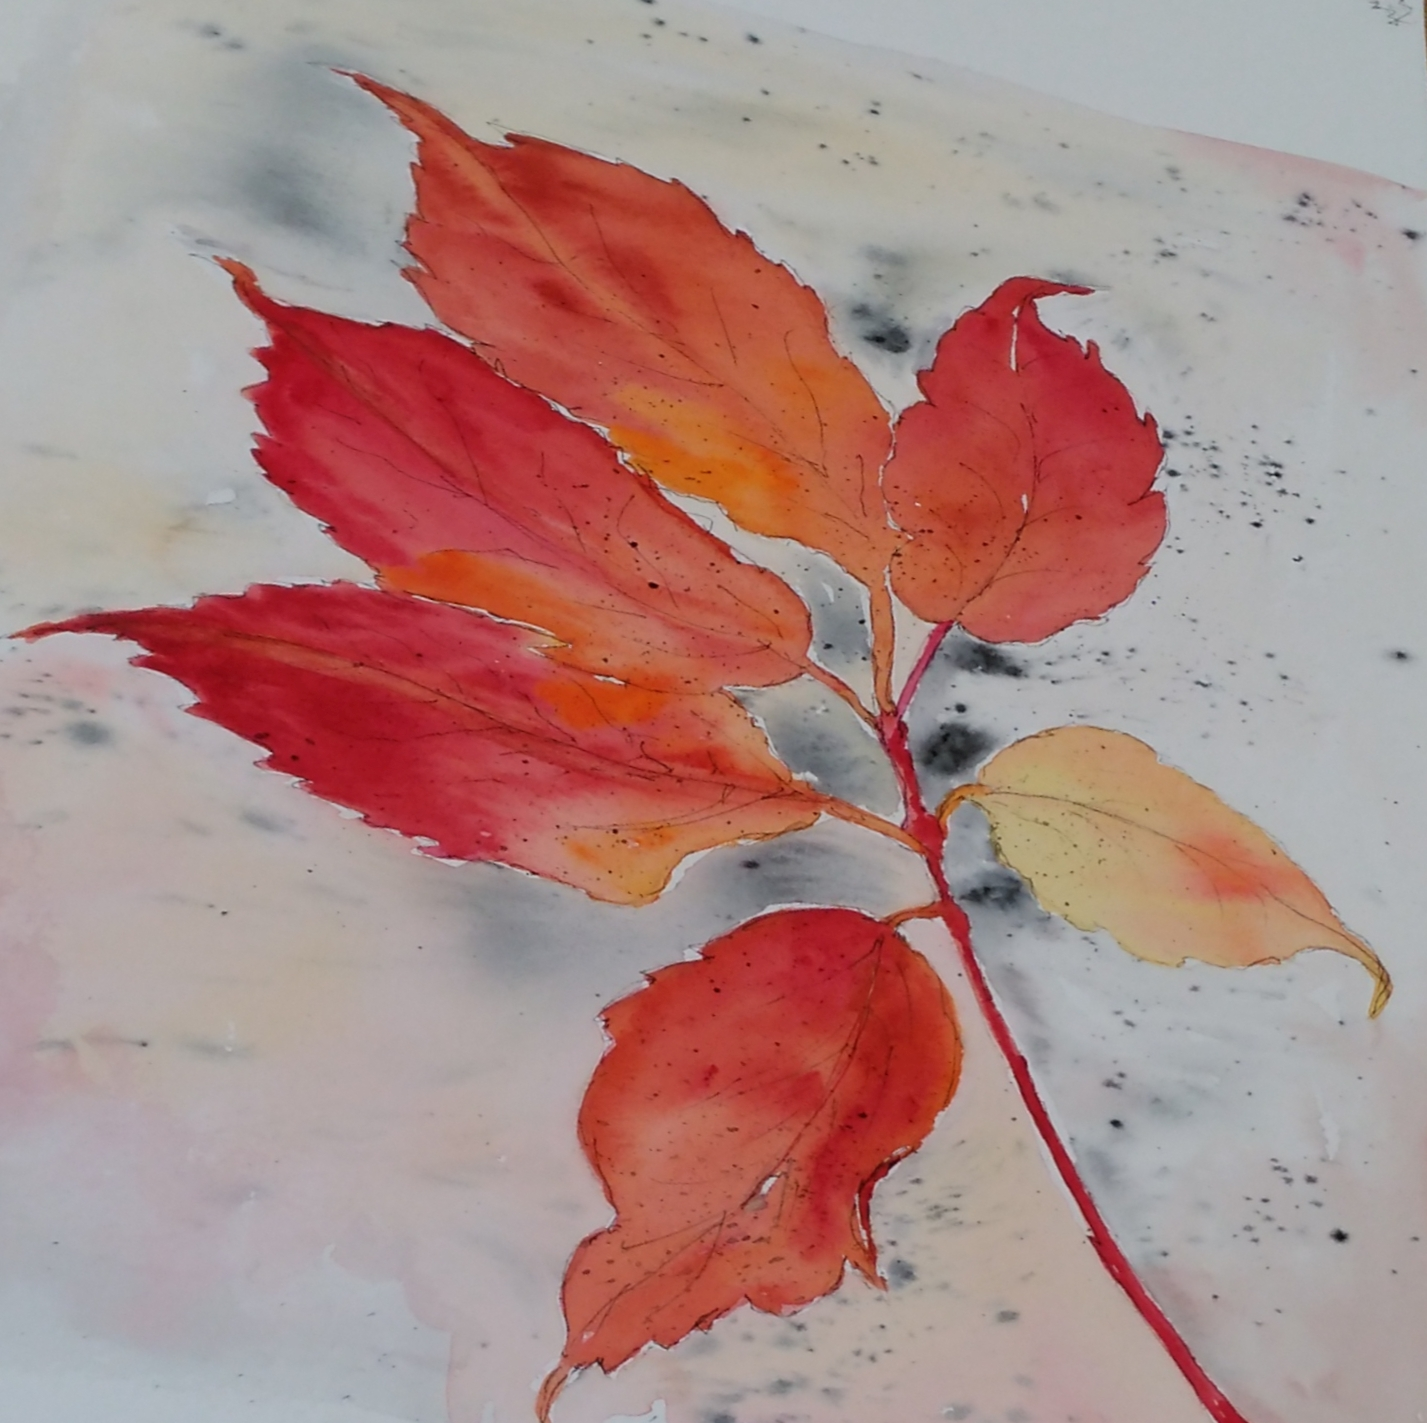 A watercolour of a leaf showing autumn colours, red and gold.